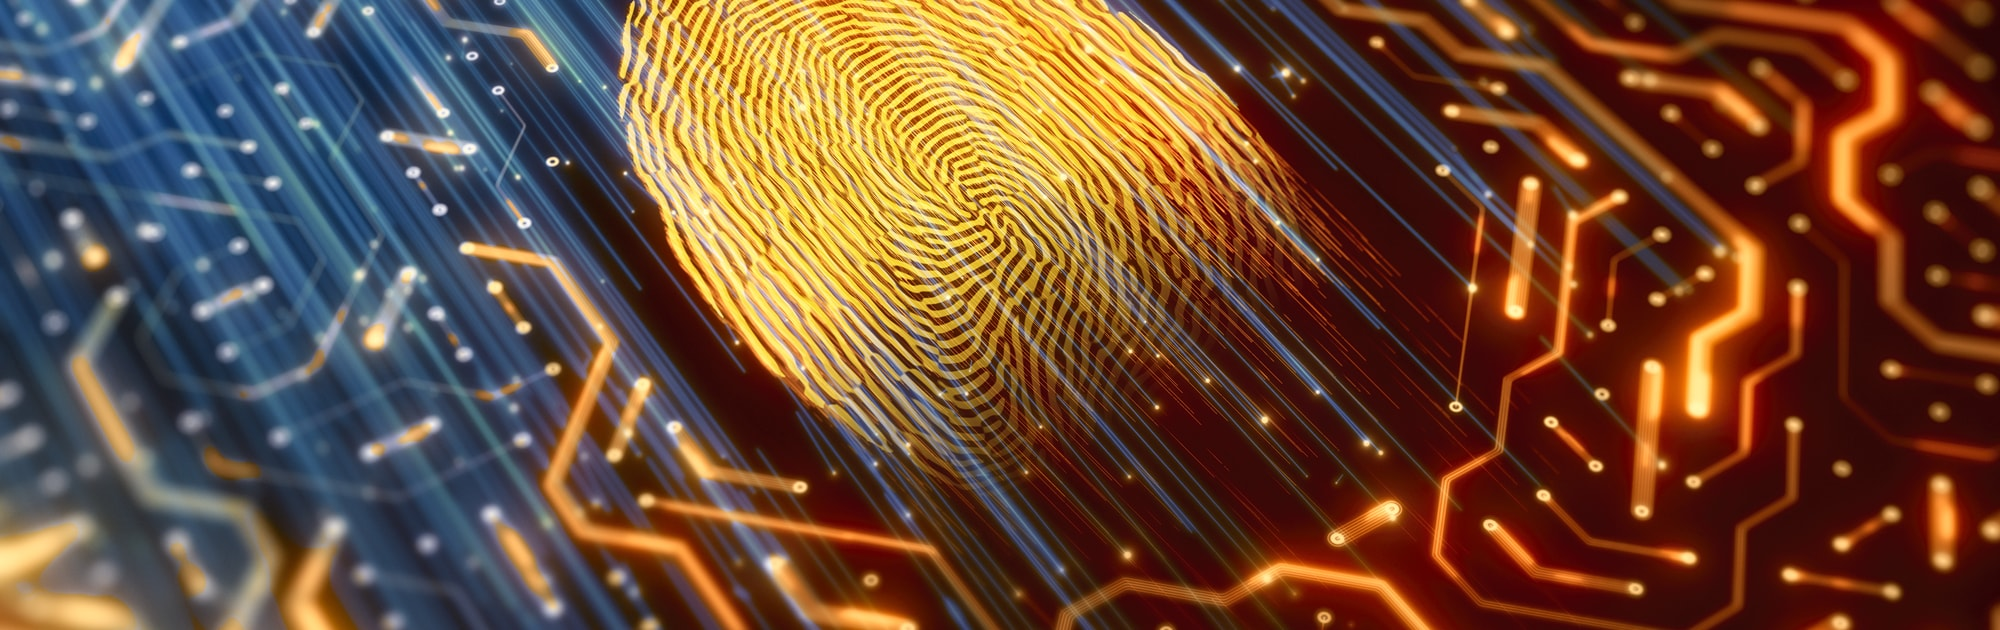 Blue lines through orange fingerprint